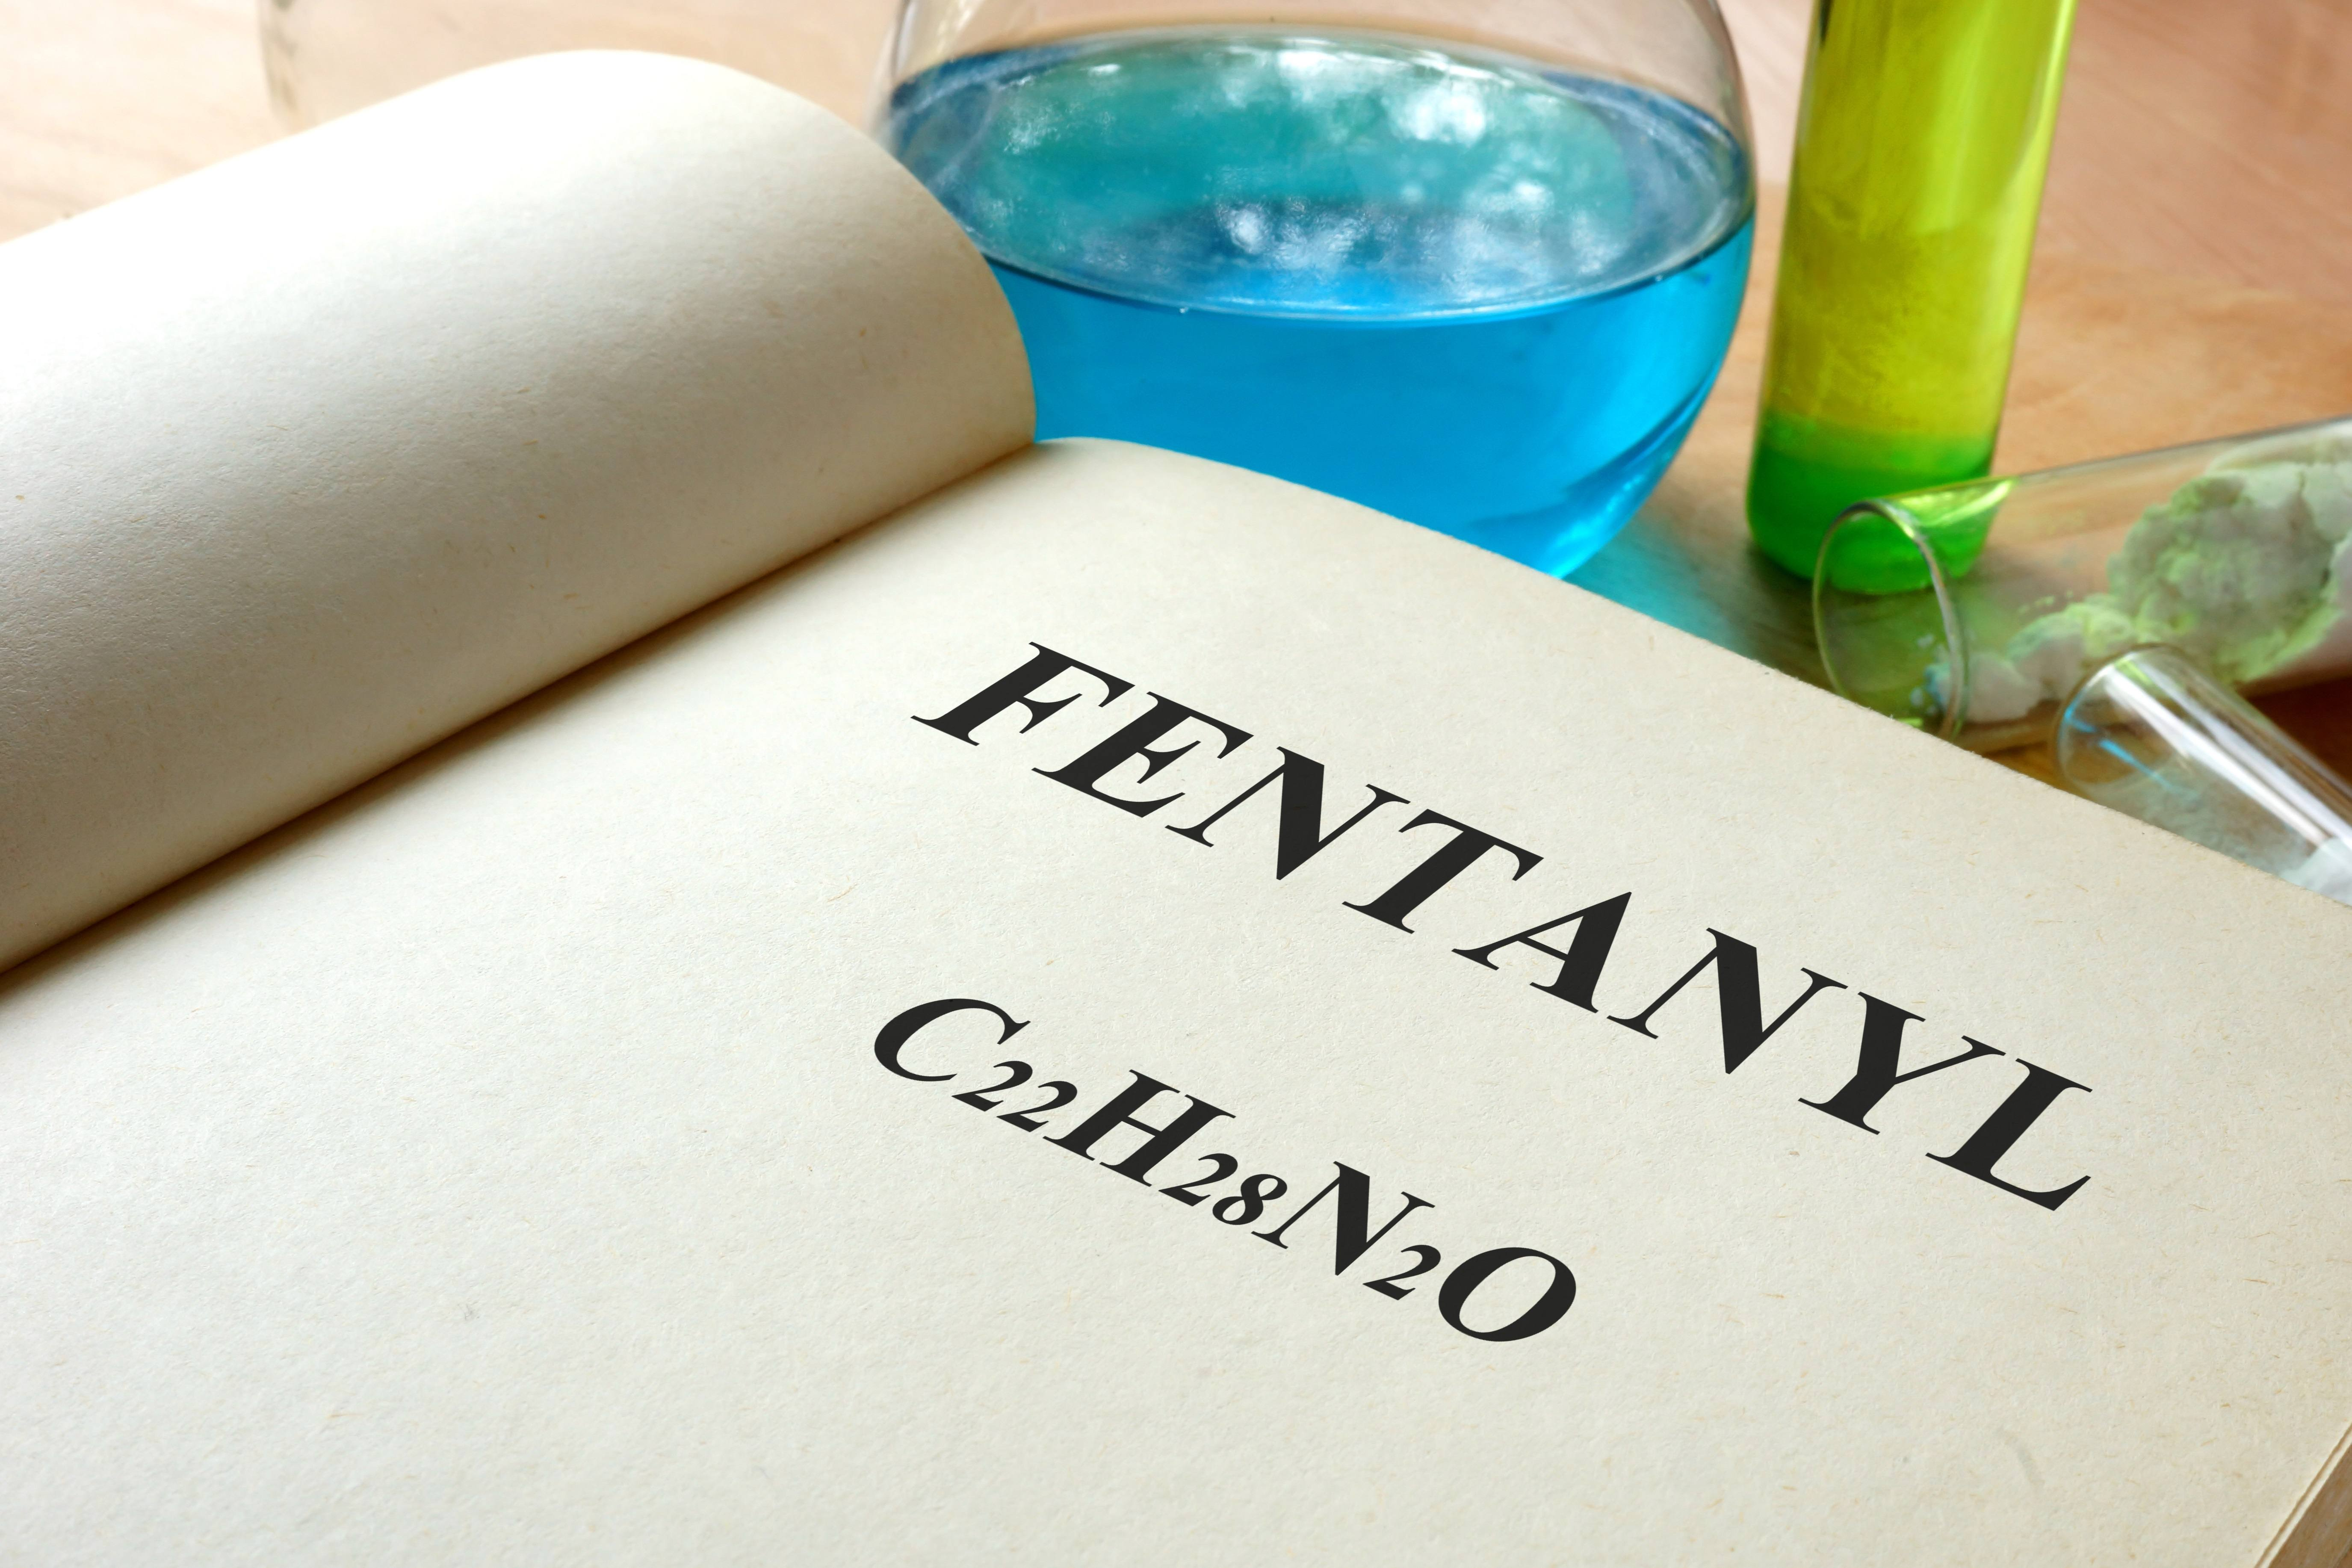 book open to page with fentanyl written on it, test tubes next to the book